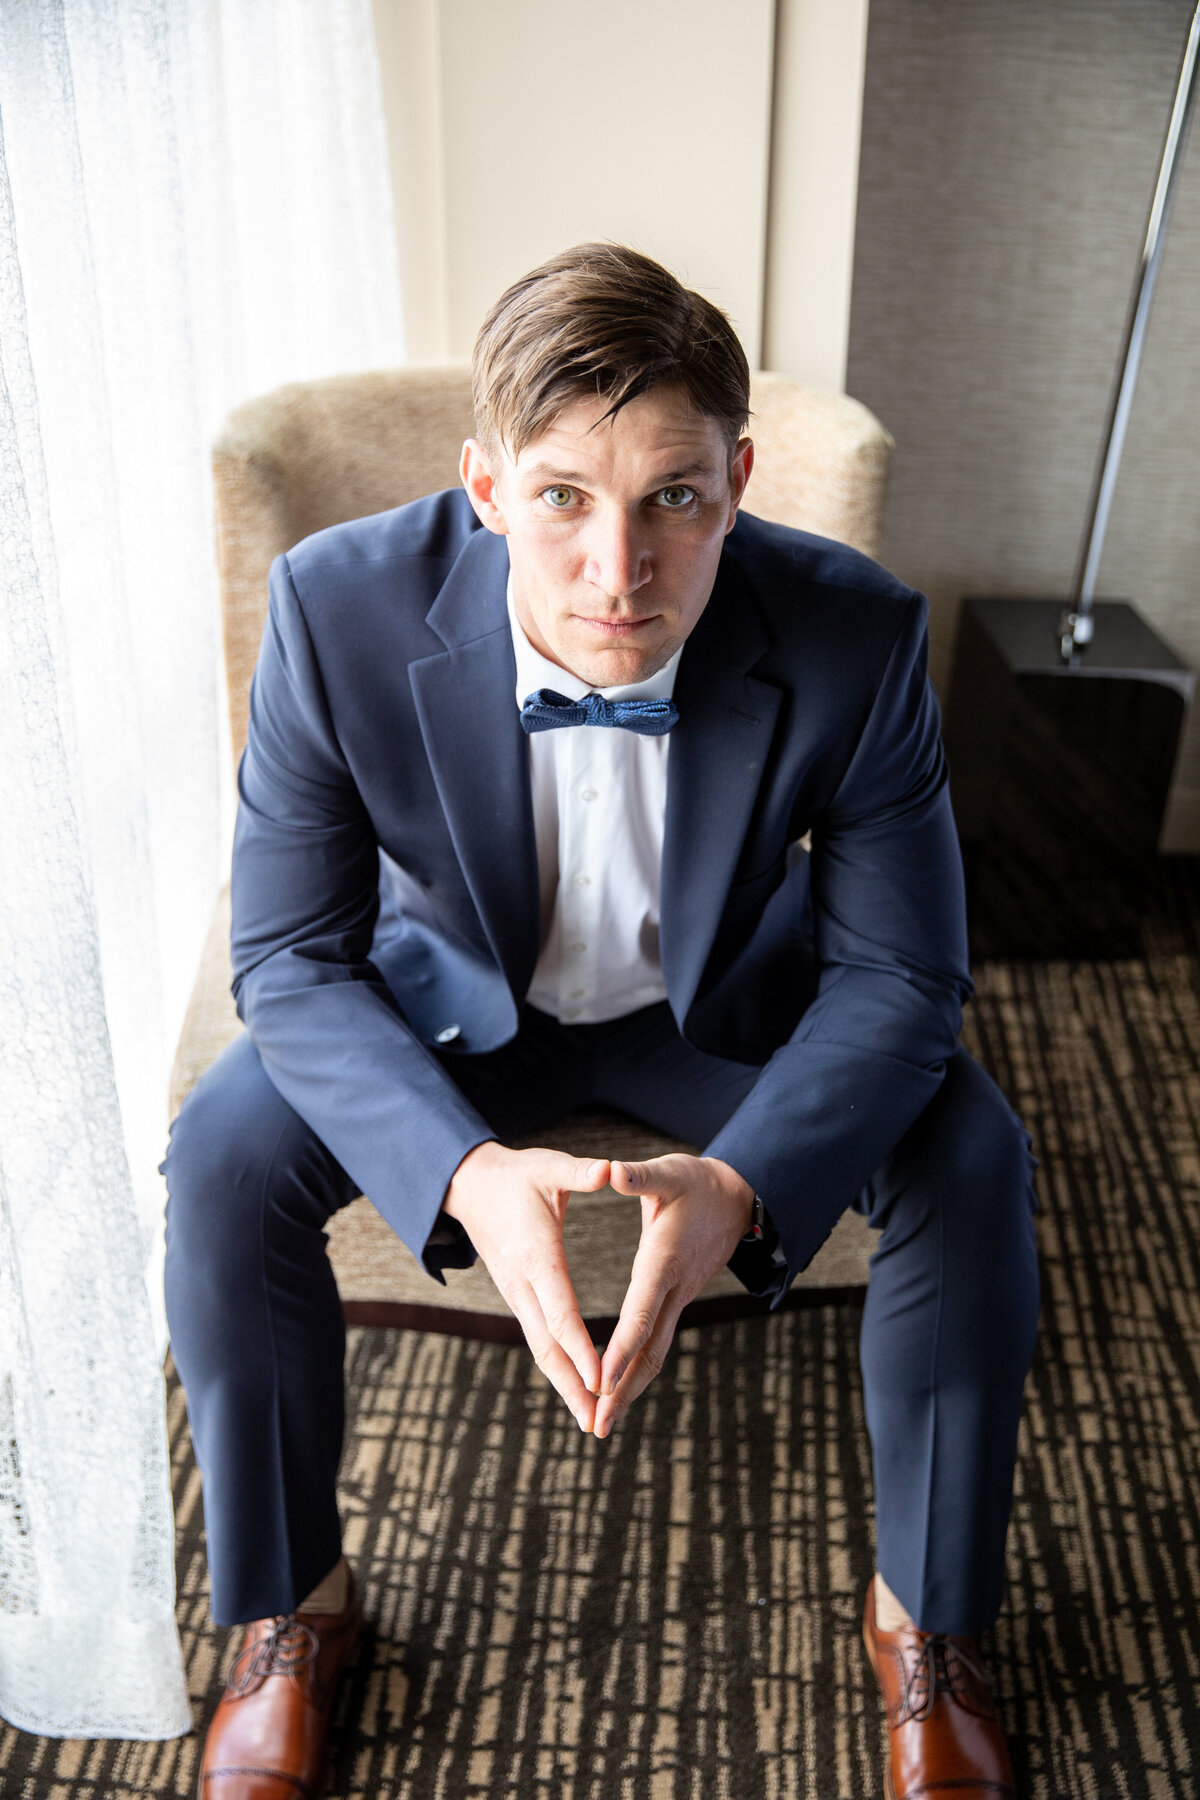 Groom Posing for a Serious Portrait